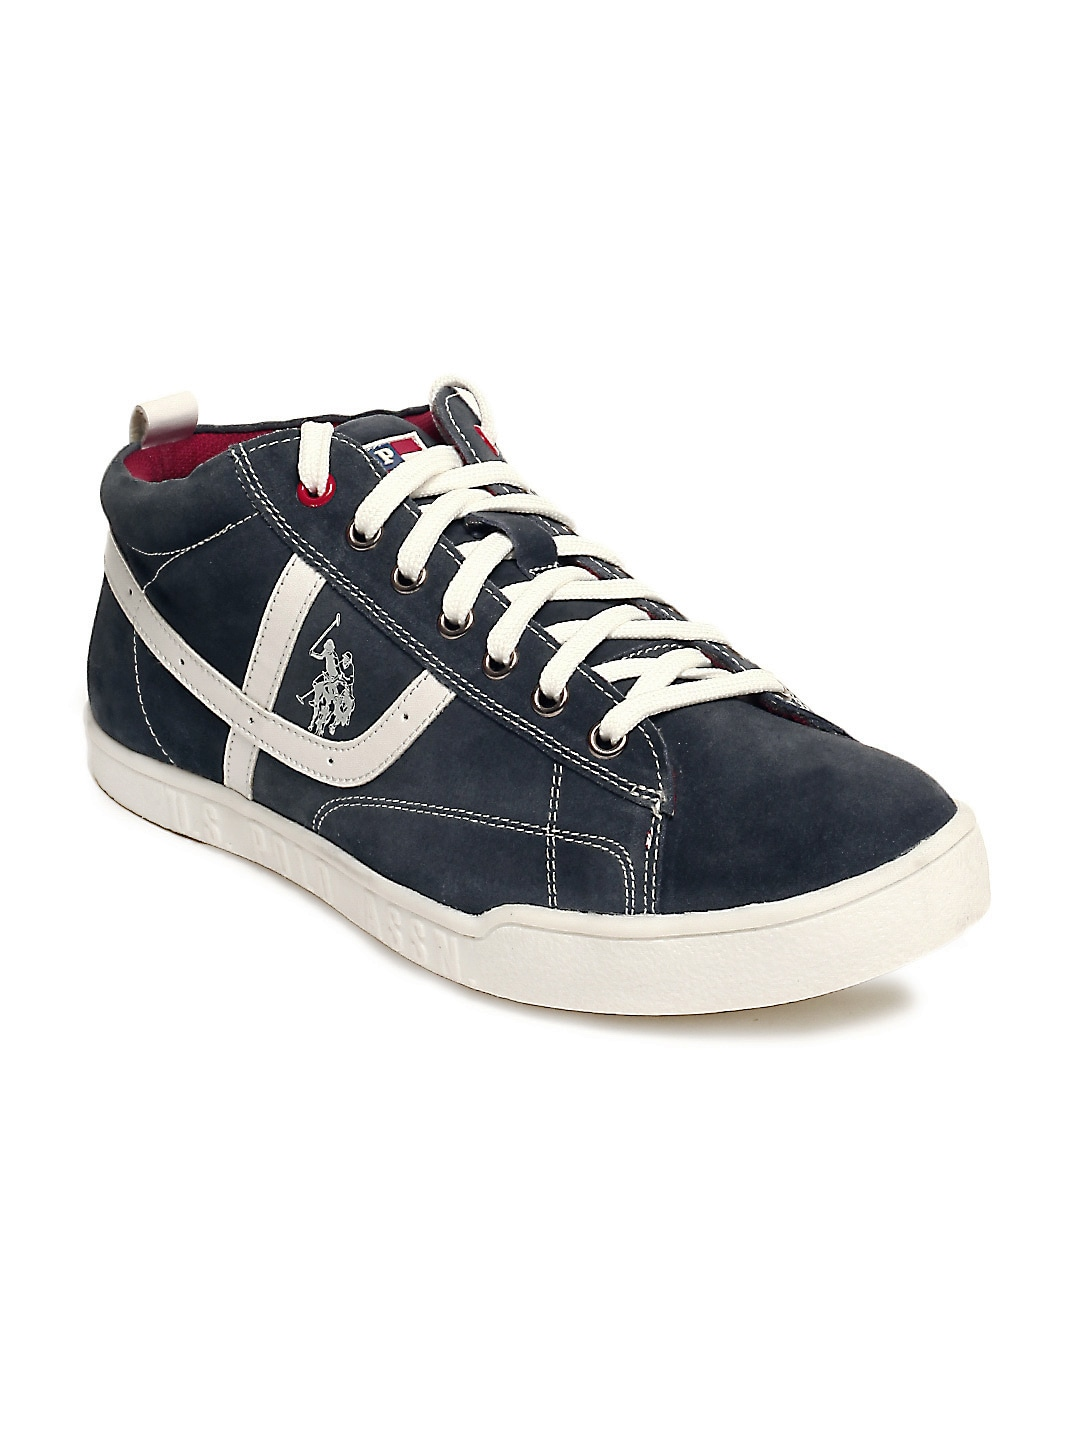 buy u s polo assn navy blue casual shoes casual